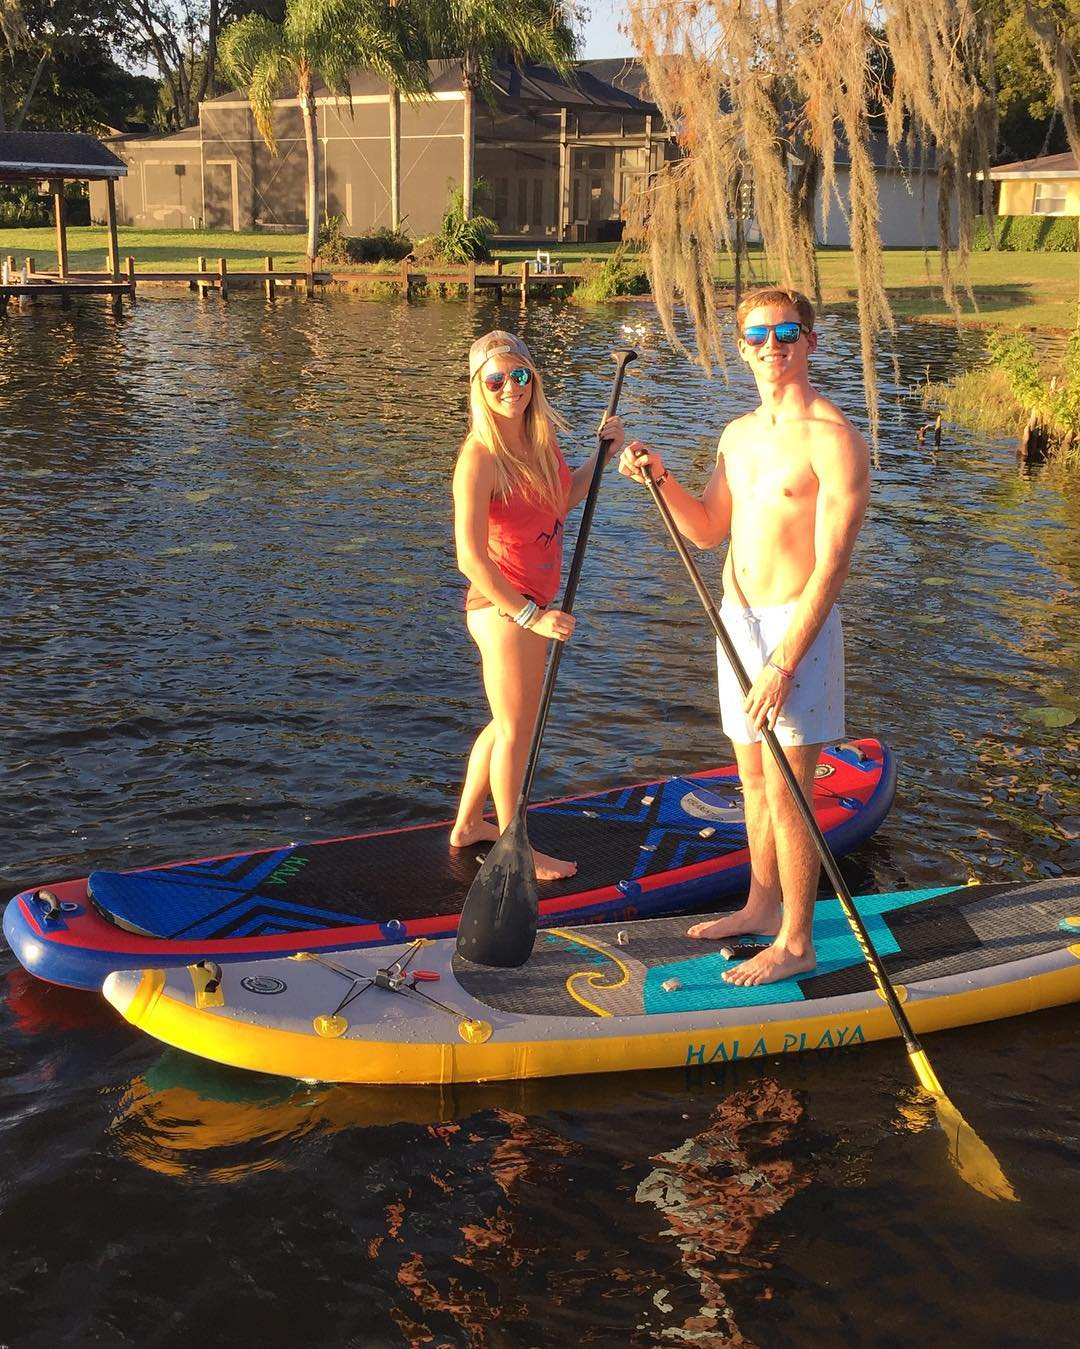 Happy new Hala Gear owners out for a paddle in Florida! #halagear #adventuredesigned #isup #inflatable #paddleboard #standuppaddle #florida #newgear #freshnewboards #sun #paddling